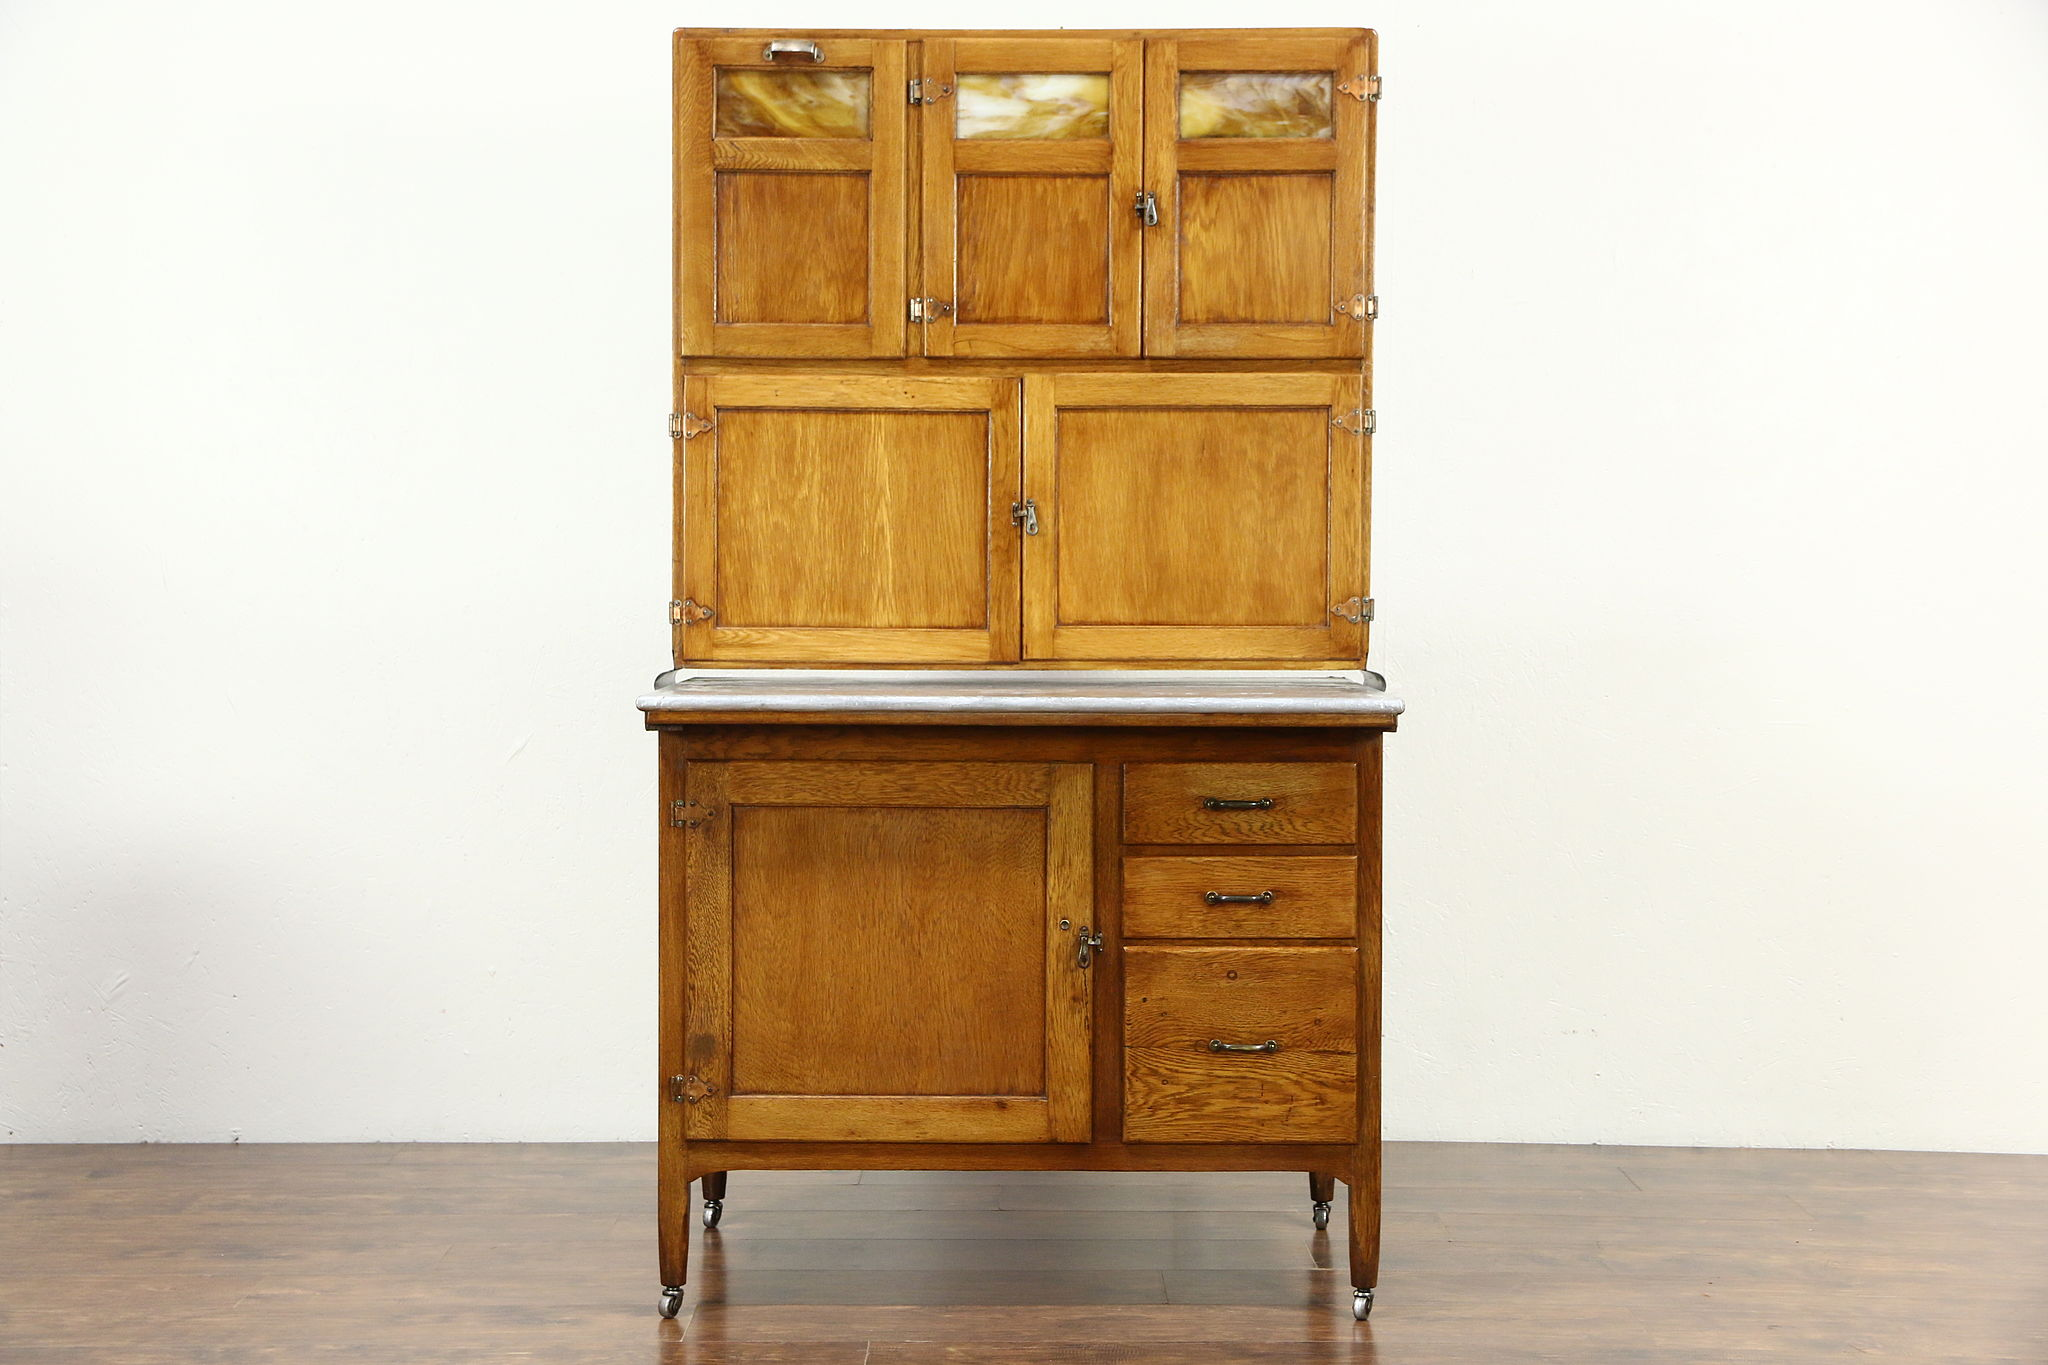 Sold Hoosier Oak Antique Kitchen Pantry Cupboard Zinc Top Stained Glass Doors Harp Gallery Antiques Furniture